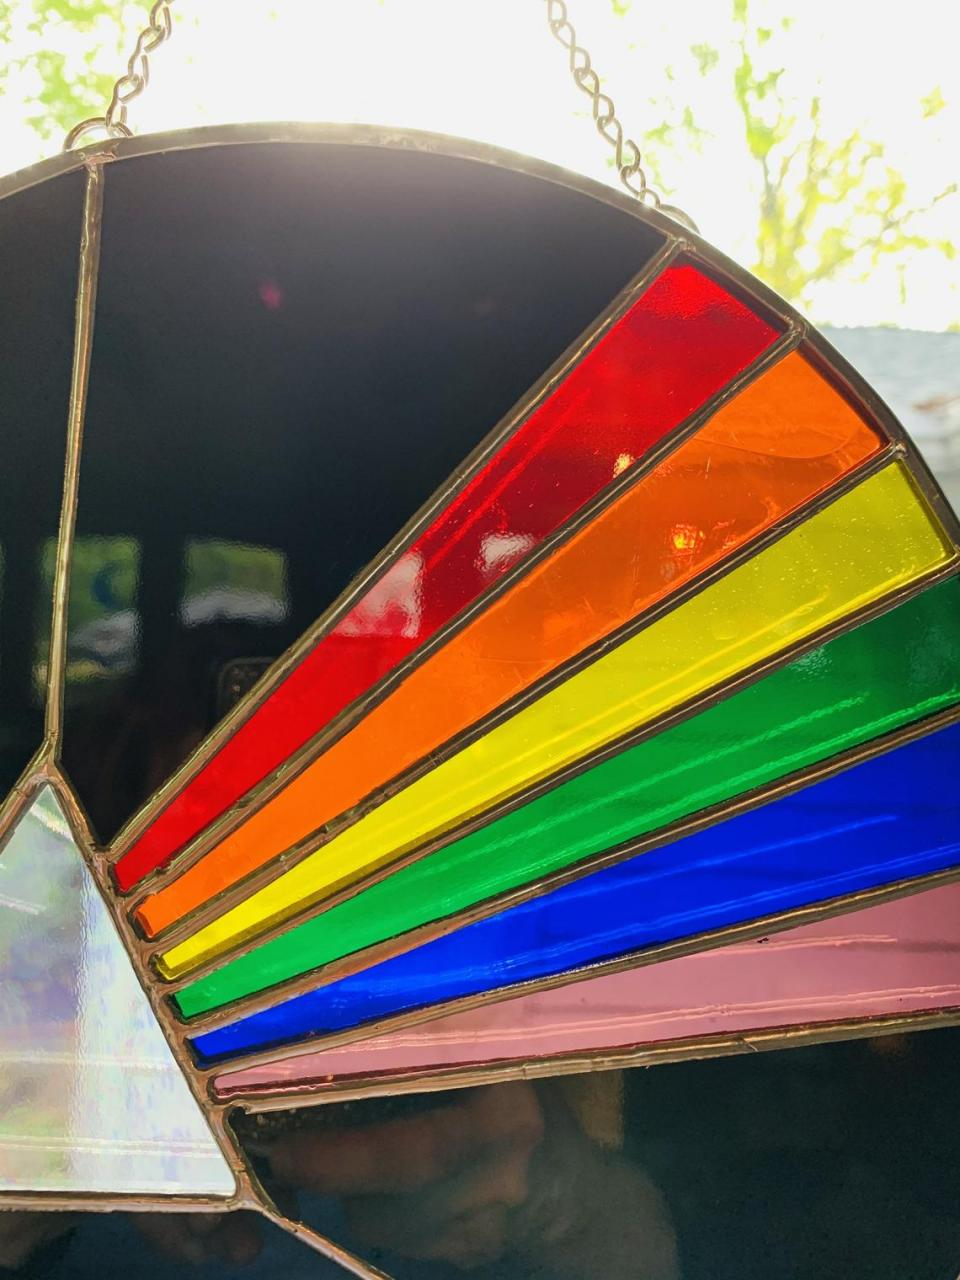 10 Pink Floyd Suncatcher/ Dark side of the moon/ prism with image 4